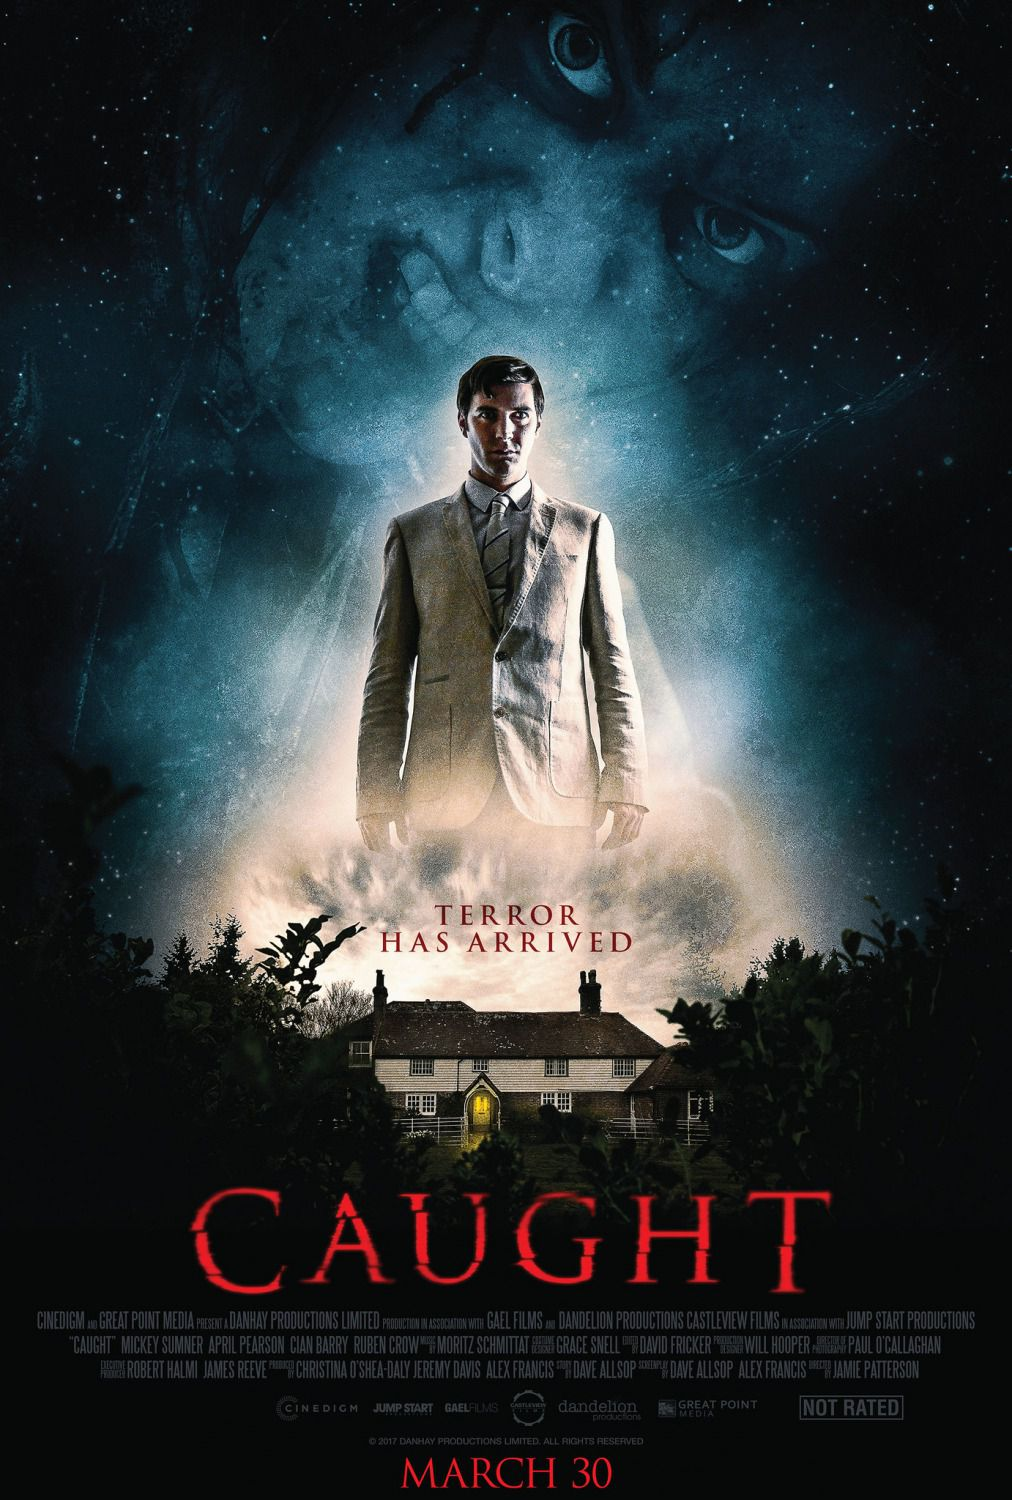 Caught - horror film poster 2018